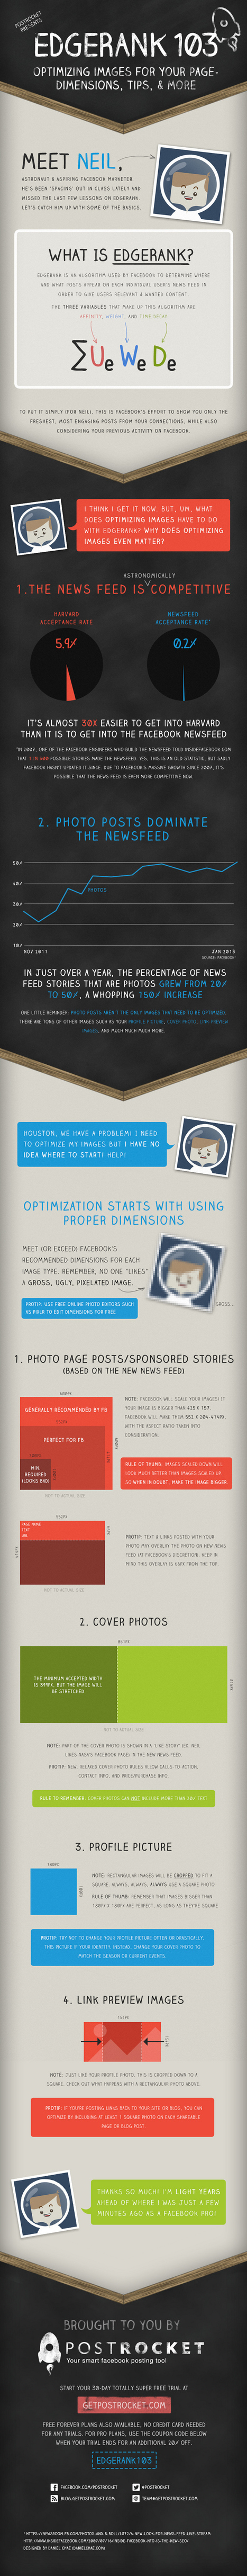 Infographic: Best Practices for Optimizing Facebook Photos | Social Media Butterflies | Scoop.it